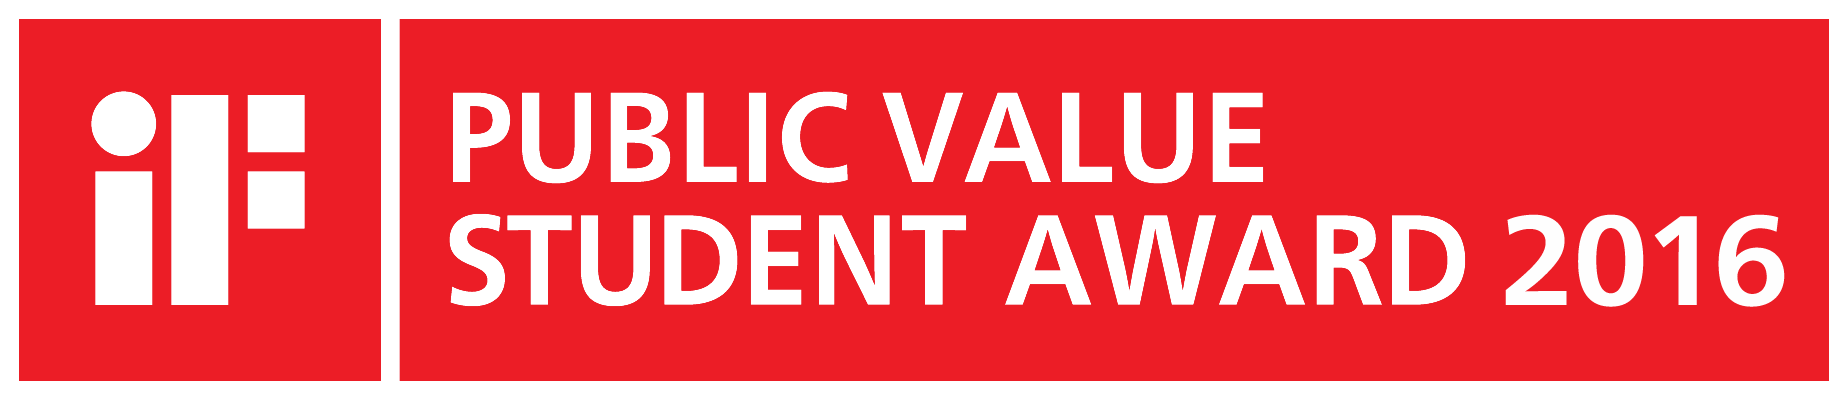 iF PUBLIC VALUE STUDENT AWARD 2016